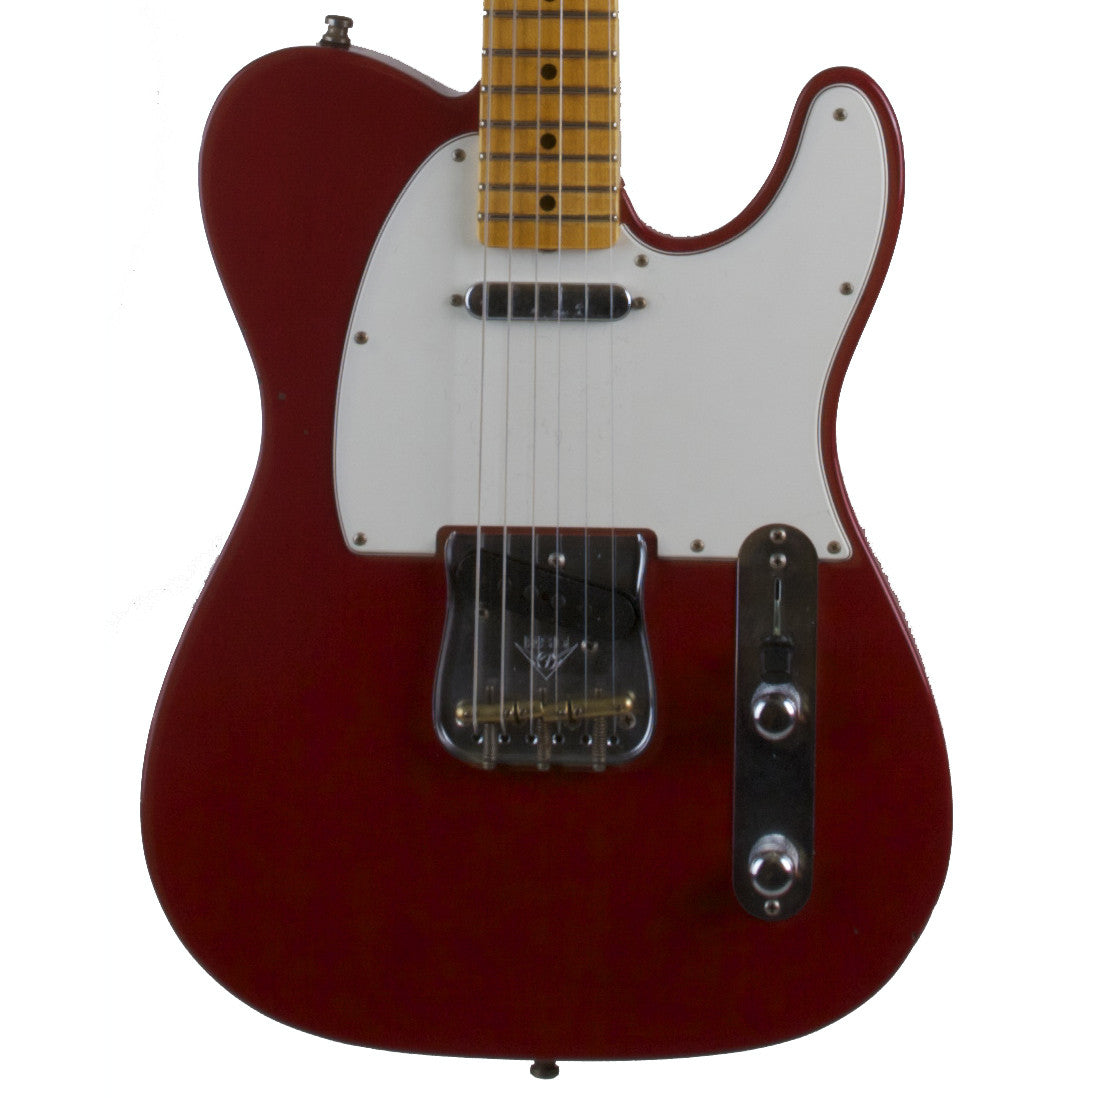 2015 Fender Custom Collection PostModern Journeyman Telecaster MN, Dakota Red - Garrett Park Guitars  - 2